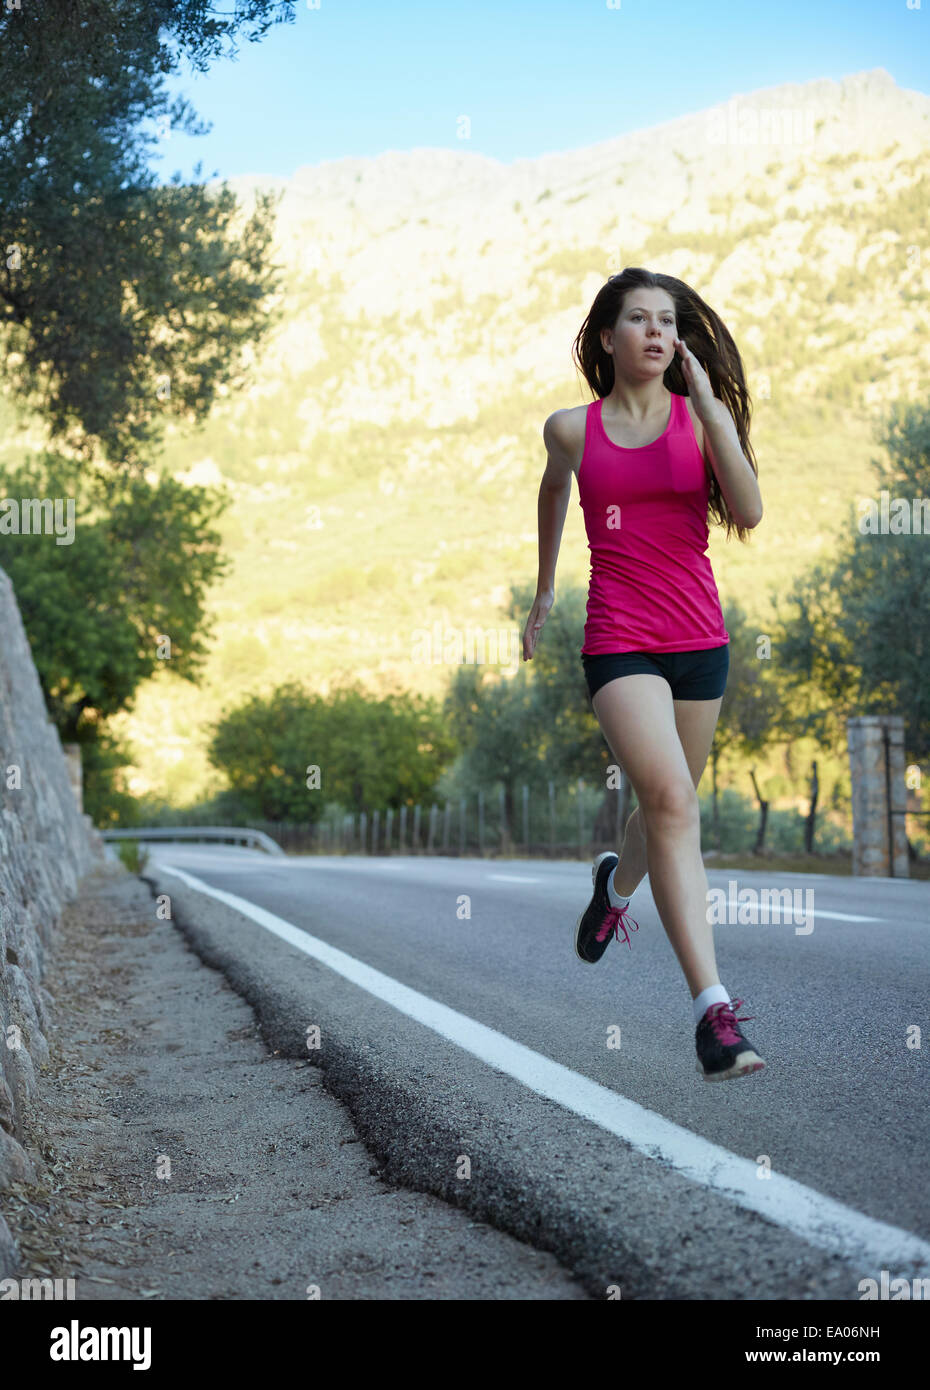 Teenage girl running on road, Majorca, Spain - Stock Image